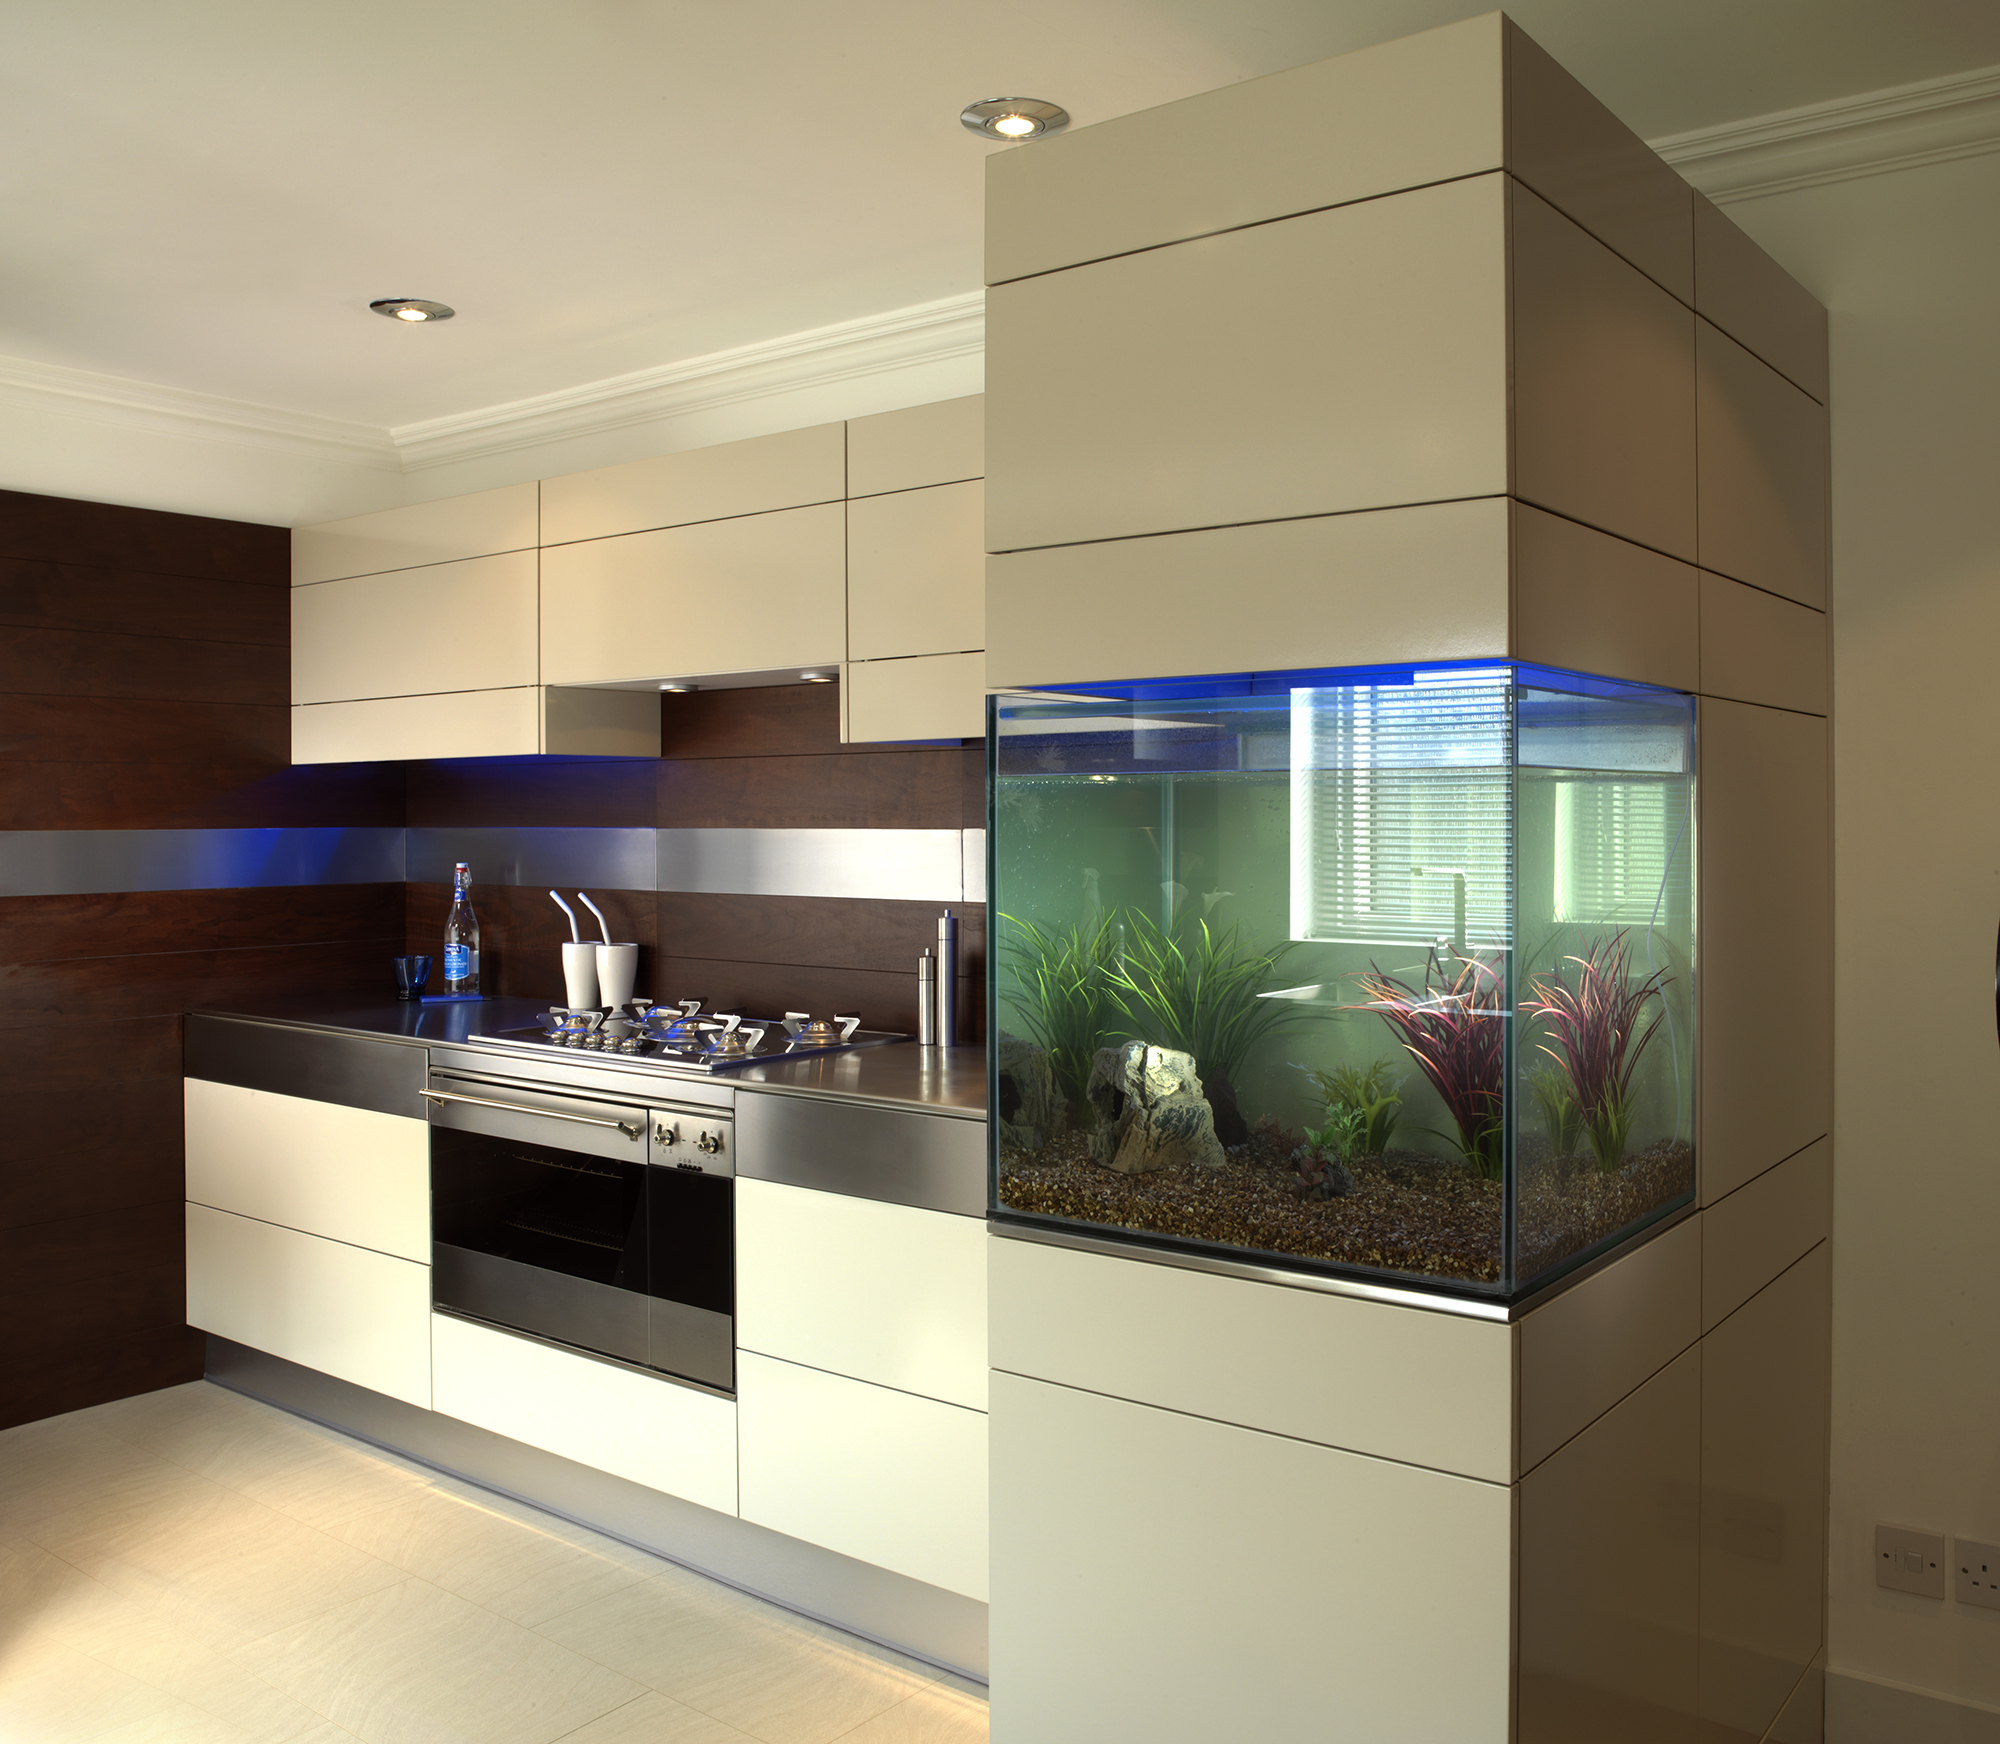 Luxury Kitchen Designs Uk Bespoke Luxury Kitchen Designs  Designer Kitchens